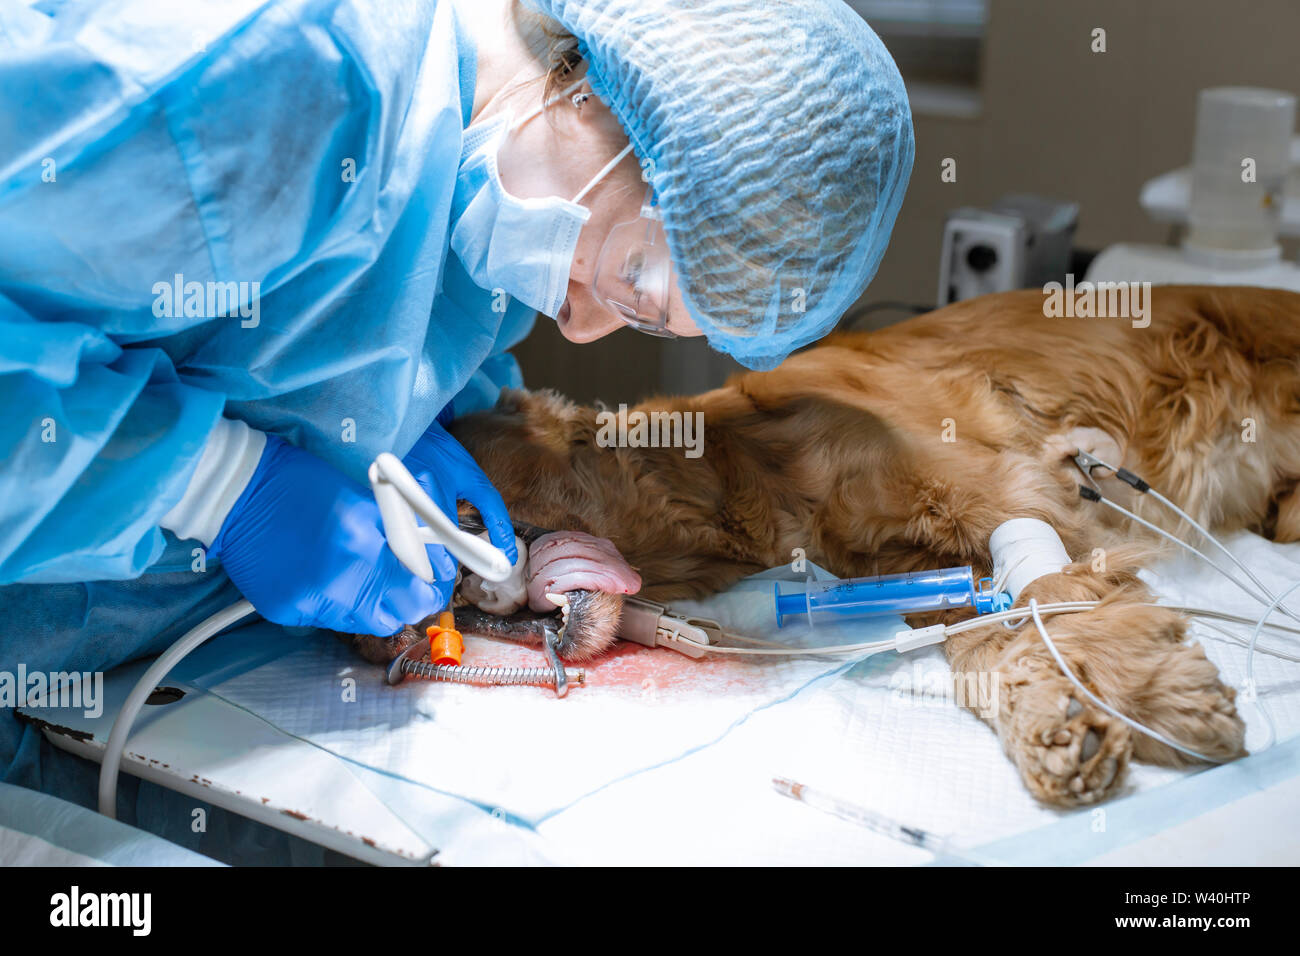 close-up procedure of professional teeth cleaning dog in a veterinary clinic. Anesthetized dog with sensor on tongue. Pet healthcare concept. - Stock Image